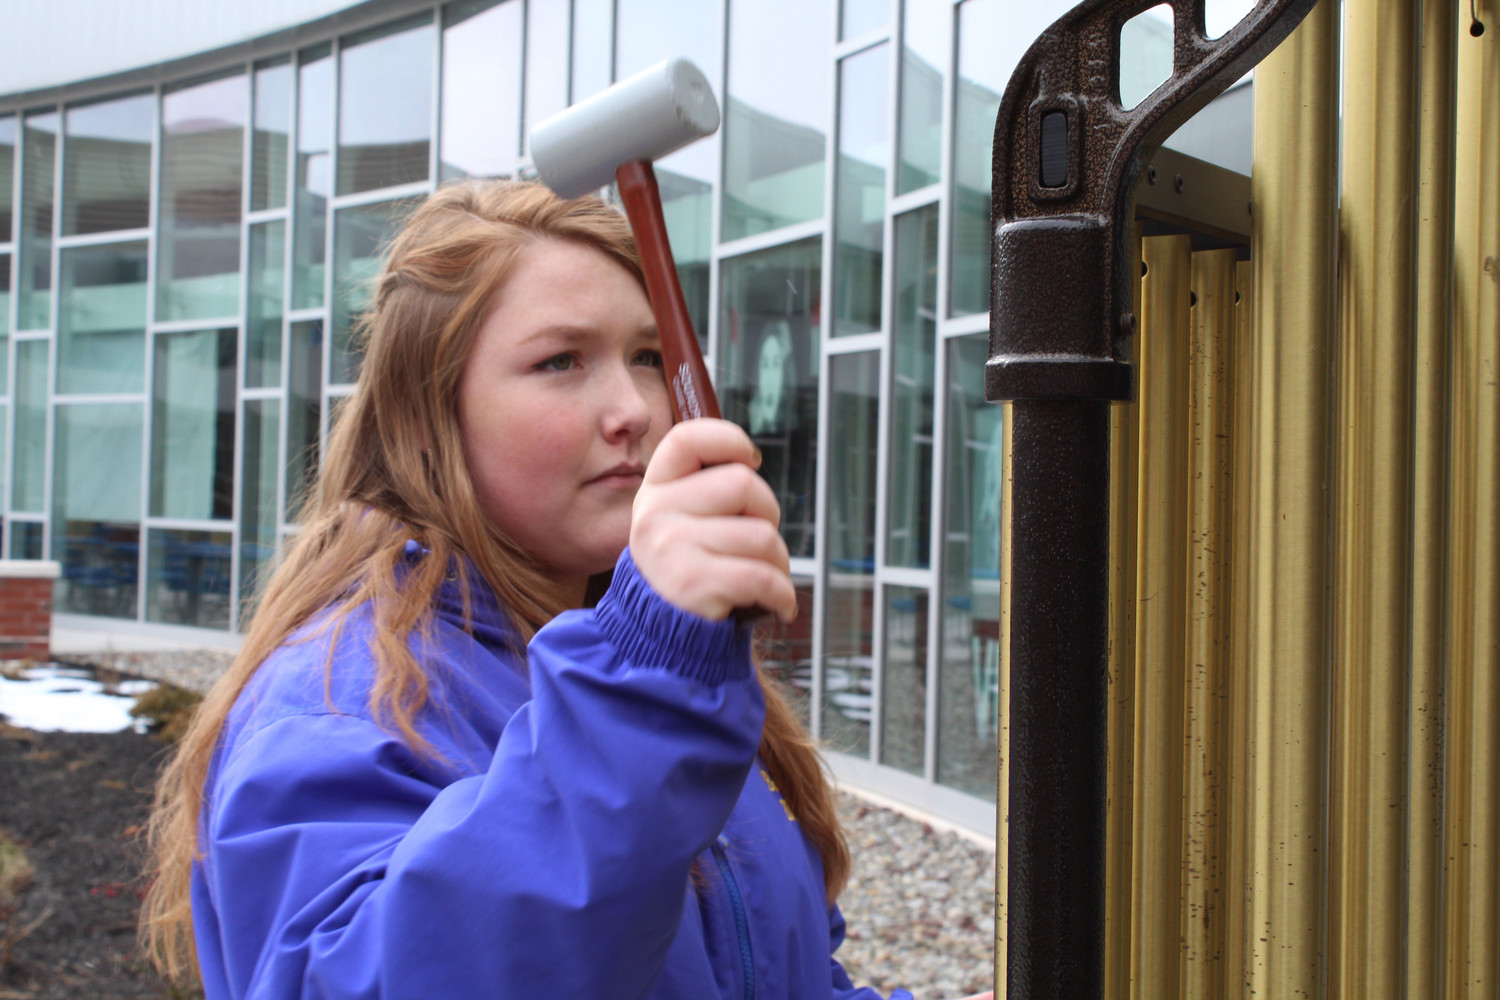 Zoey Bright rang the chimes 17 times in honor of the 17 people who died in Florida.